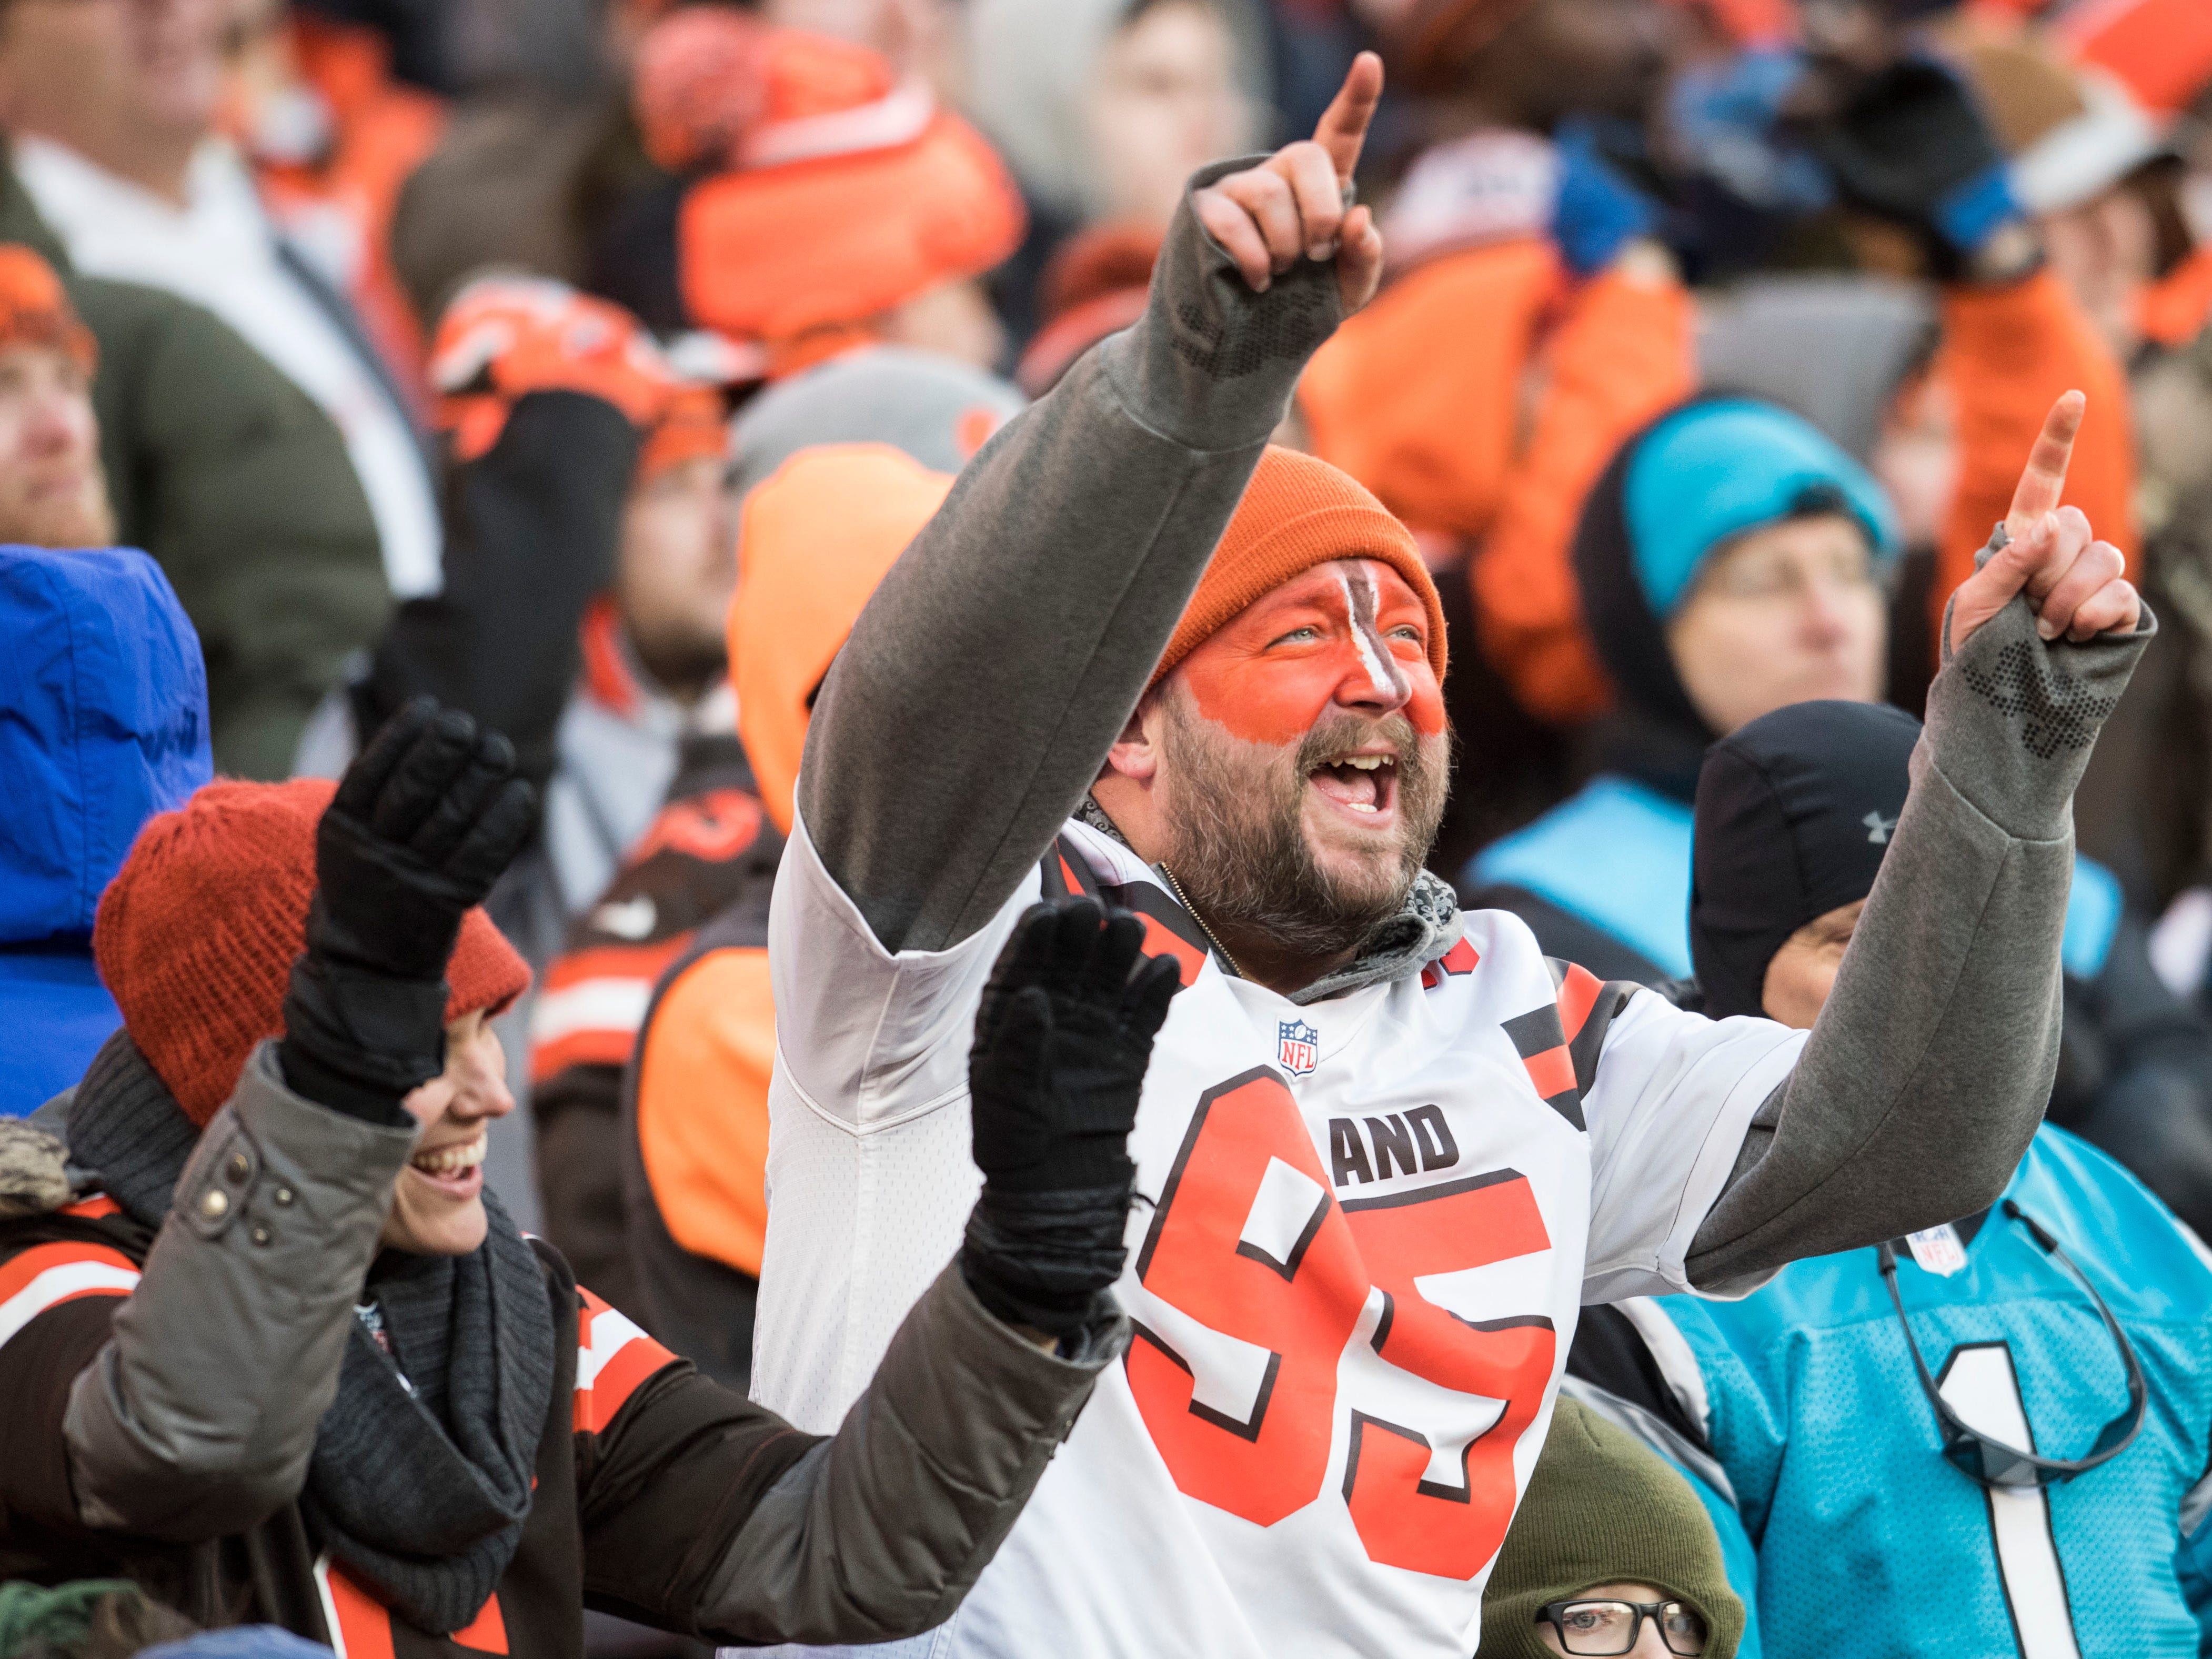 Cleveland Browns fan Brandon Jablonski cheers during the second half against the Carolina Panthers at FirstEnergy Stadium. Mandatory Credit: Ken Blaze-USA TODAY Sports